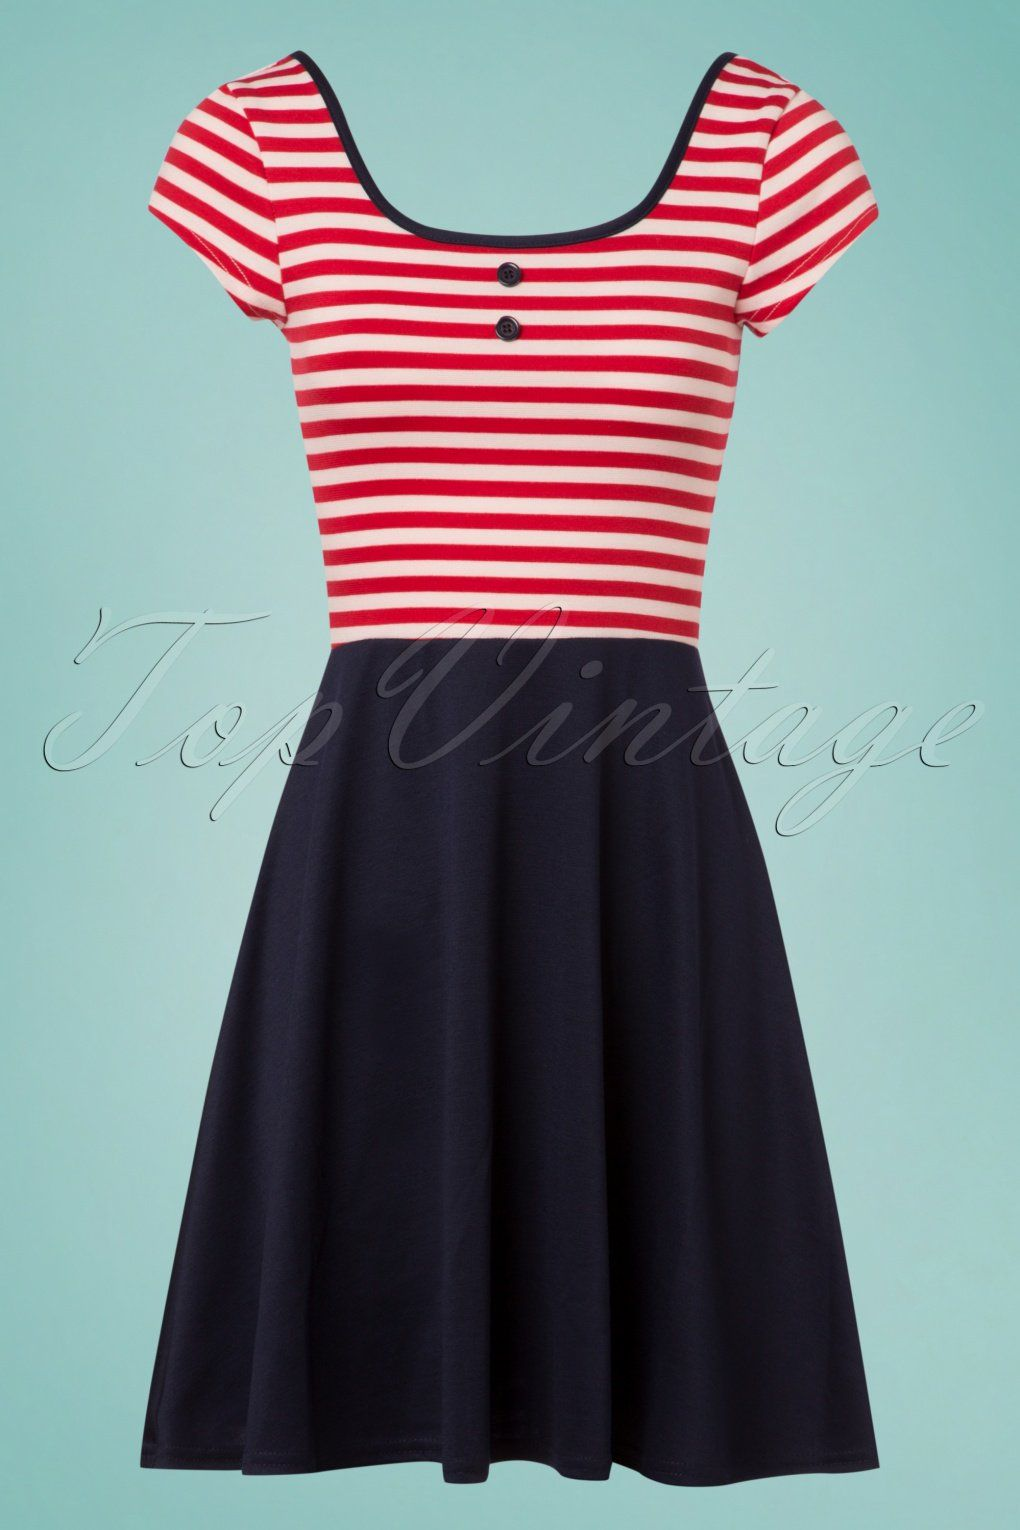 e8152e1792 ... Sailor Skater Dress in Navy and Red!Ahoy captain! You ll be completely  sailor proof thanks to her fitted bodice featuring classic red and white  stripes ...